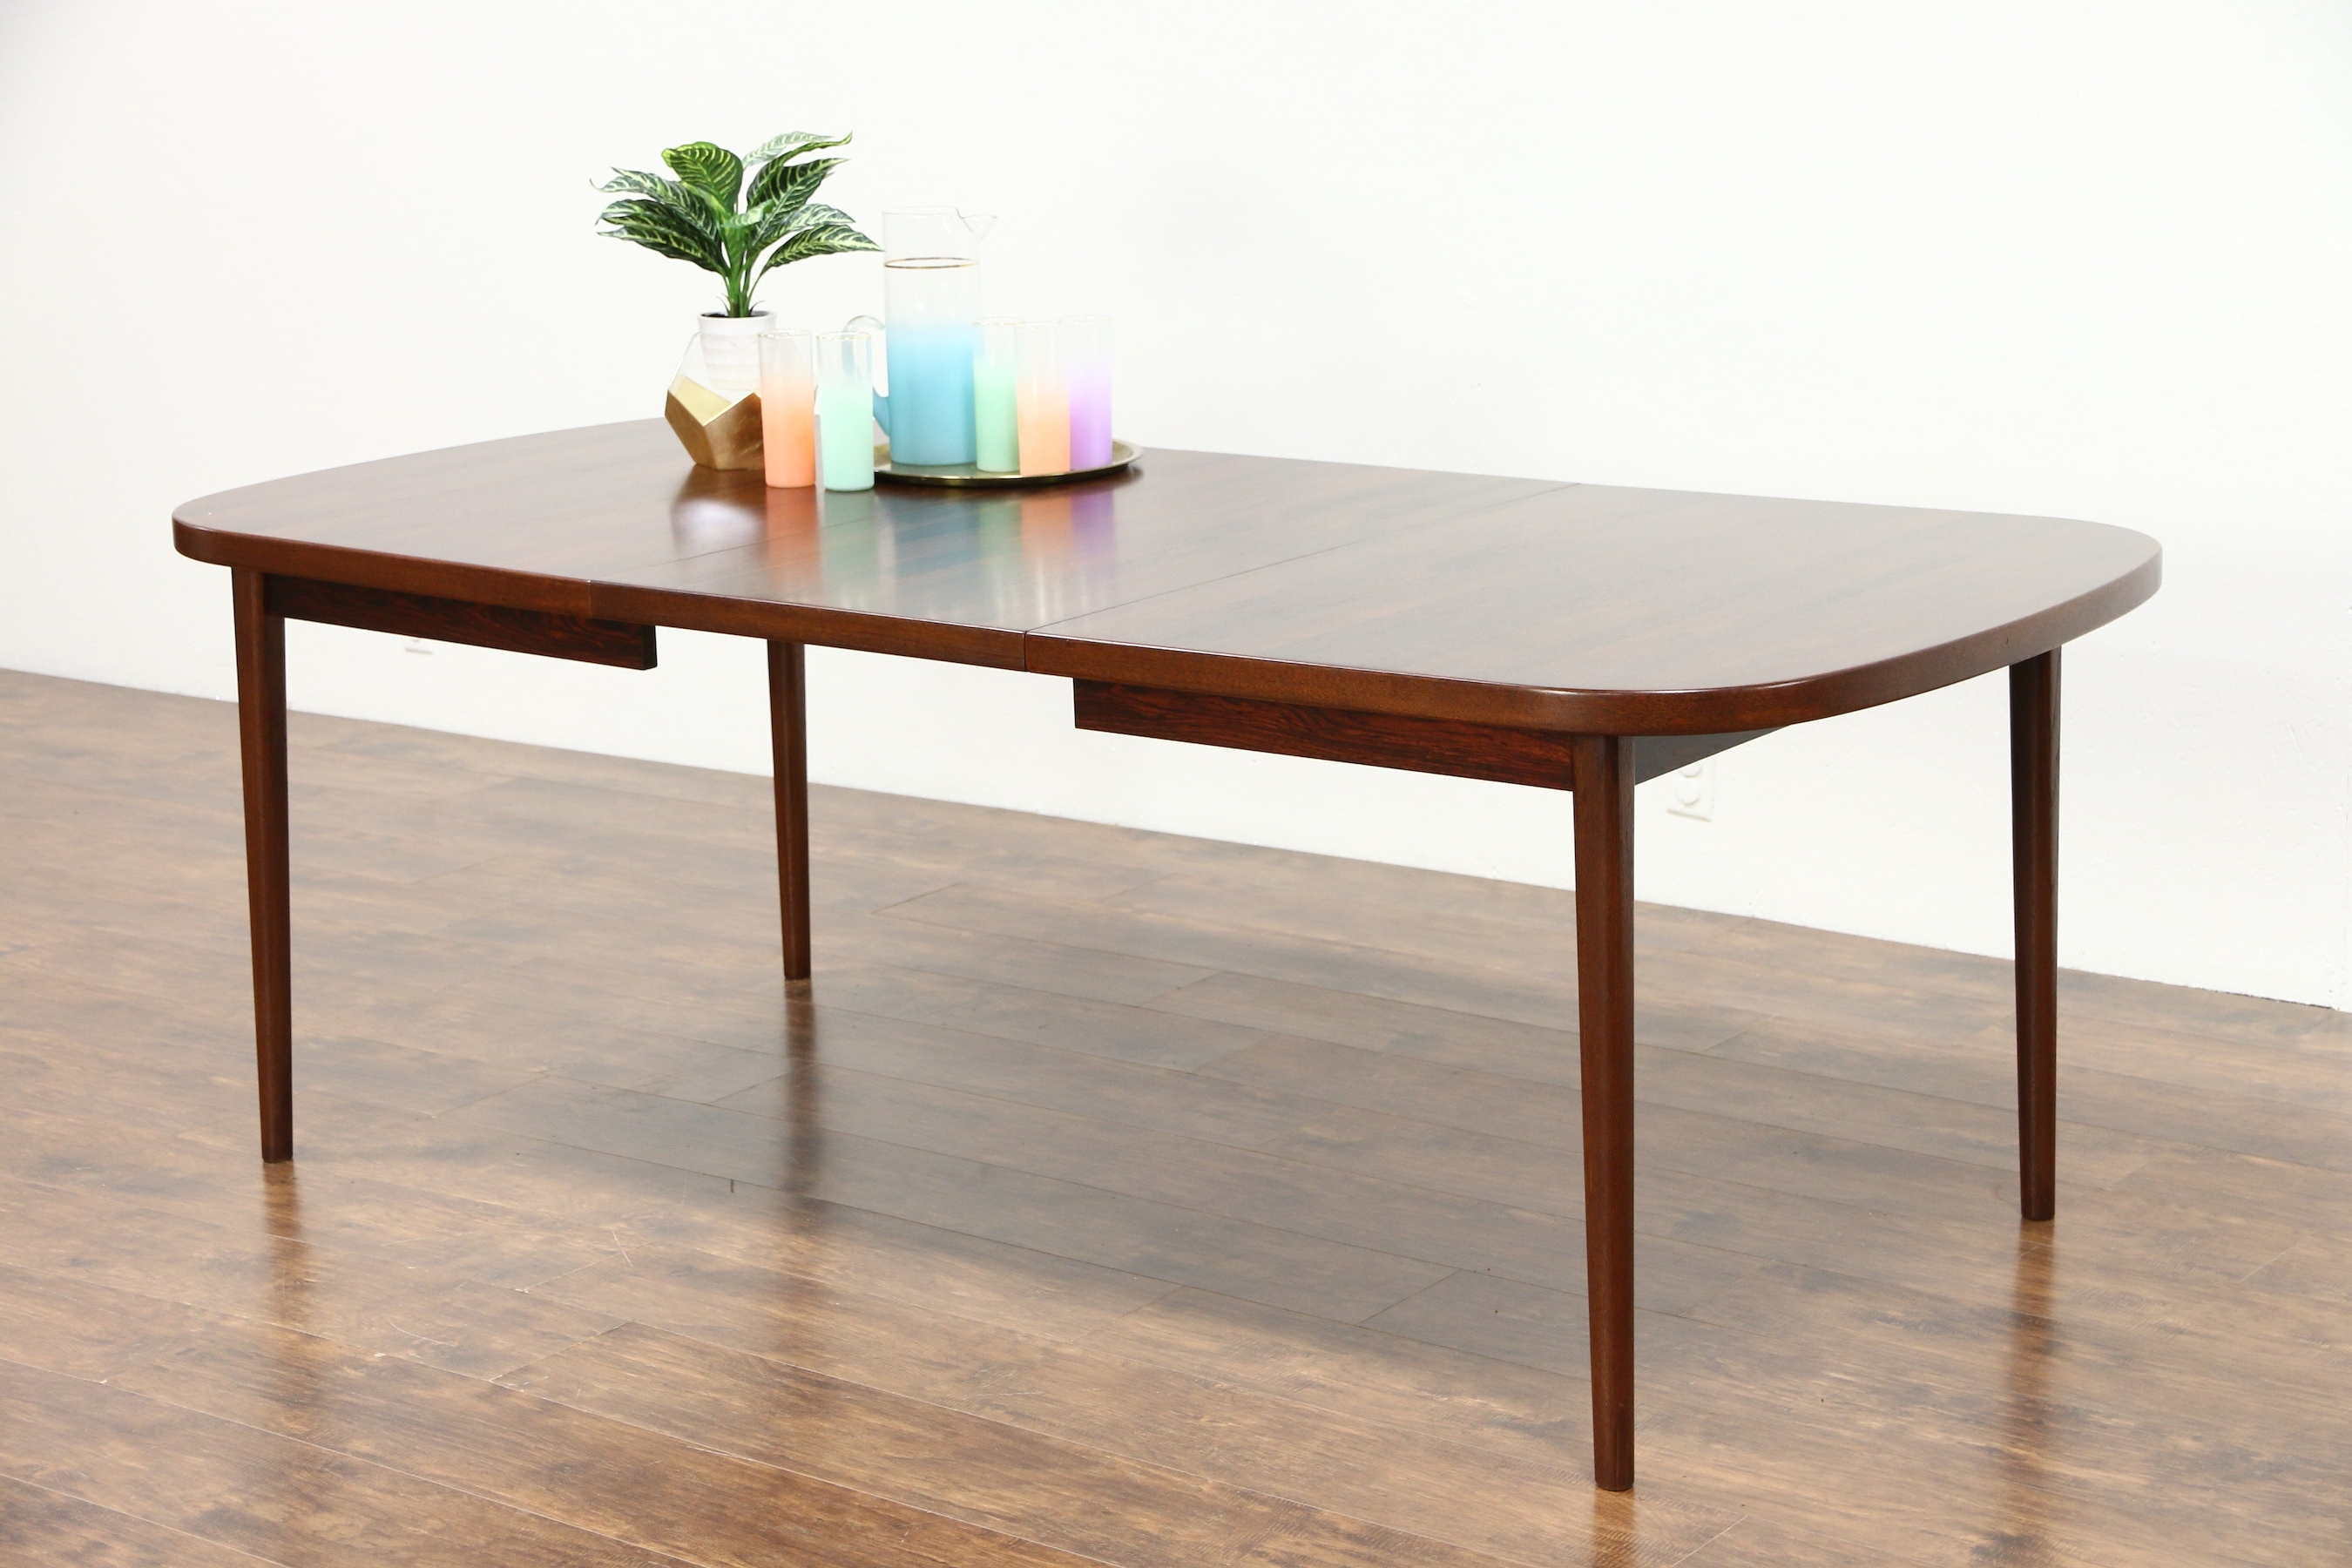 Sold – Midcentury Danish Modern Rosewood 1960's Vintage Dining Table Throughout 2017 Danish Dining Tables (View 2 of 25)